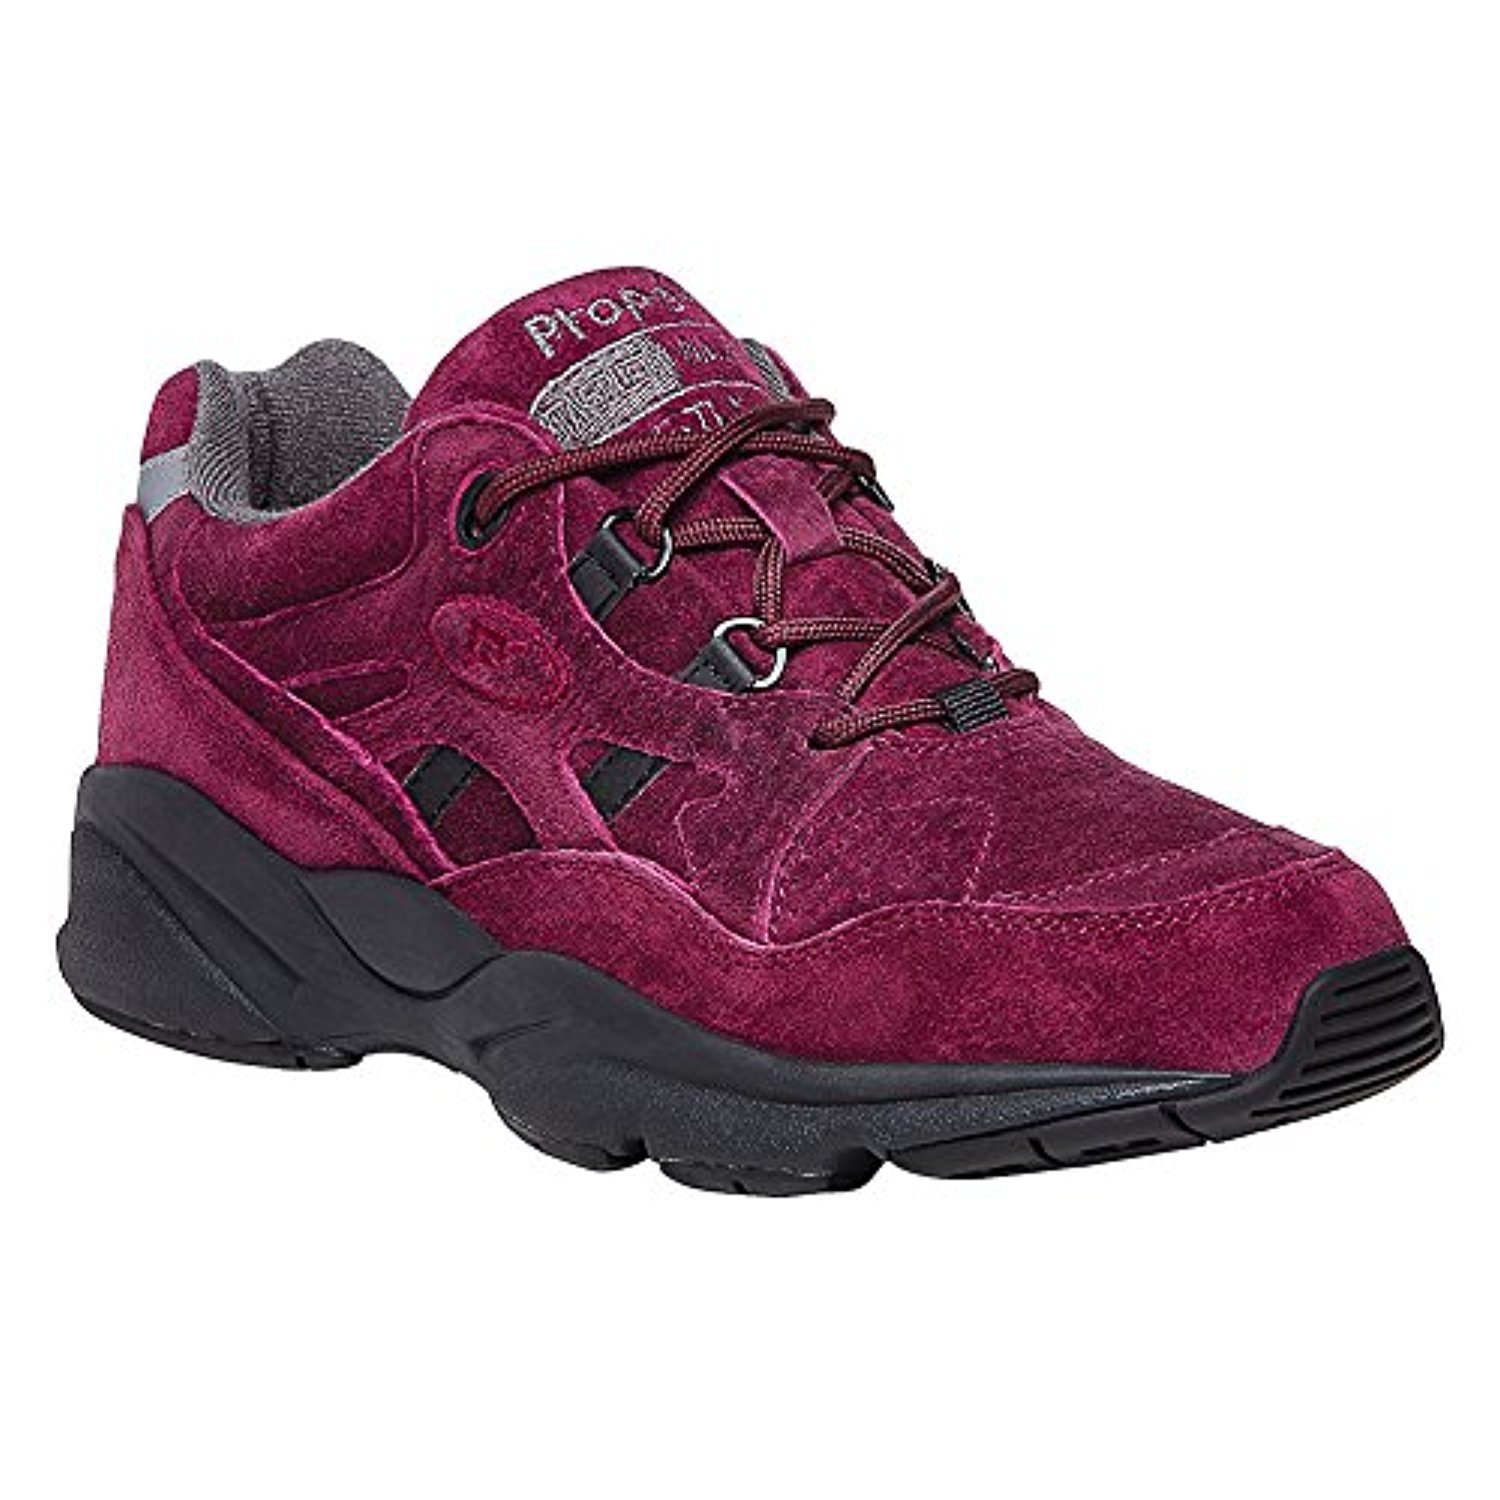 Propet Women's Stability Walker Shoe & Oxy Cleaner Bundle B074WCYNWN 5 W US|Berry Suede